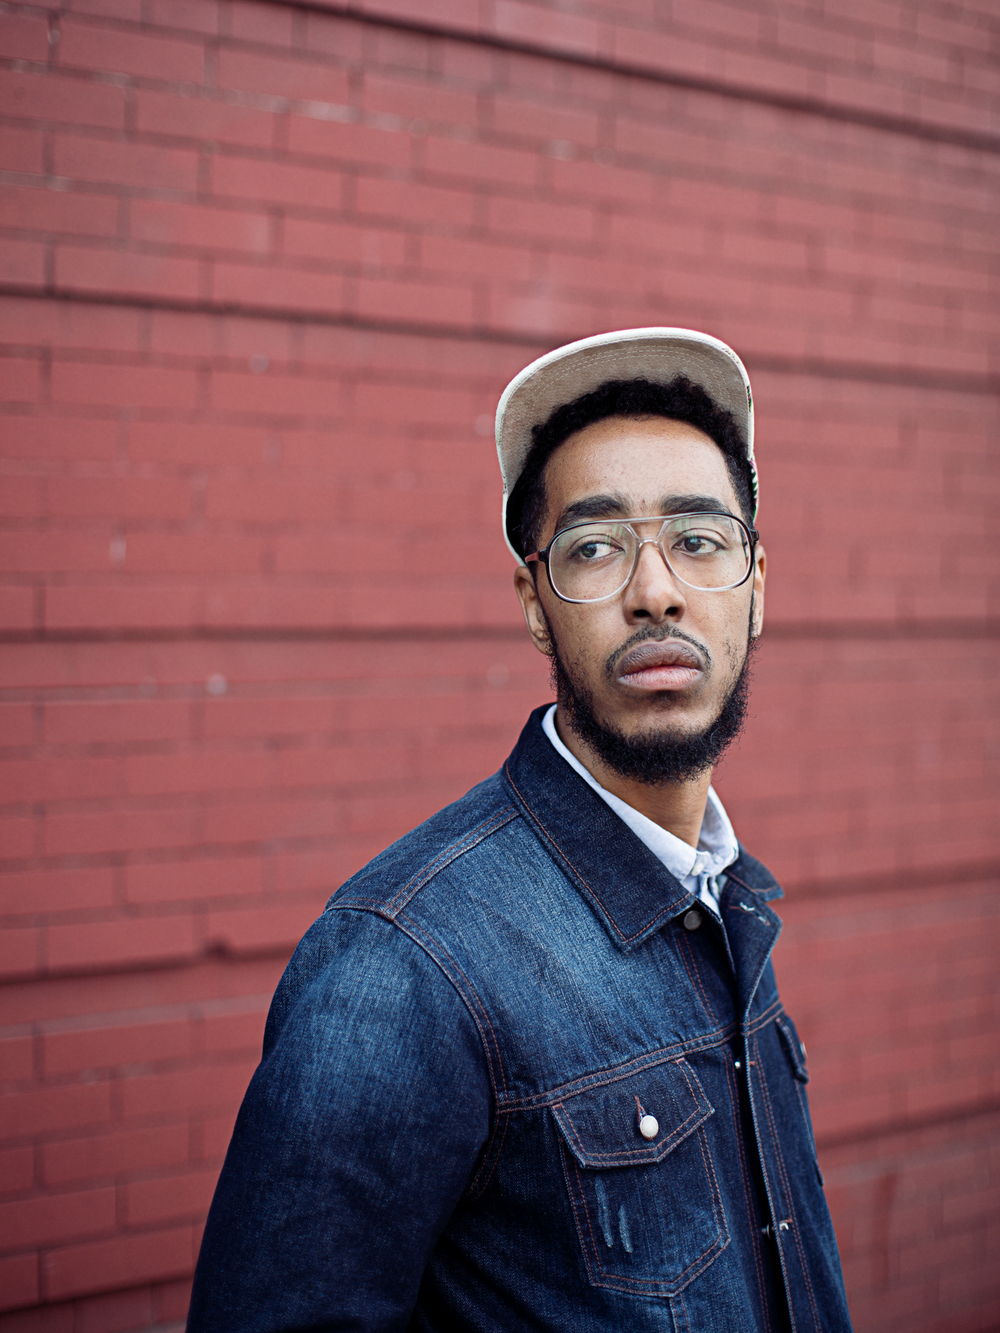 Rapper Oddisee in Bedford Styvesant, Brooklyn.